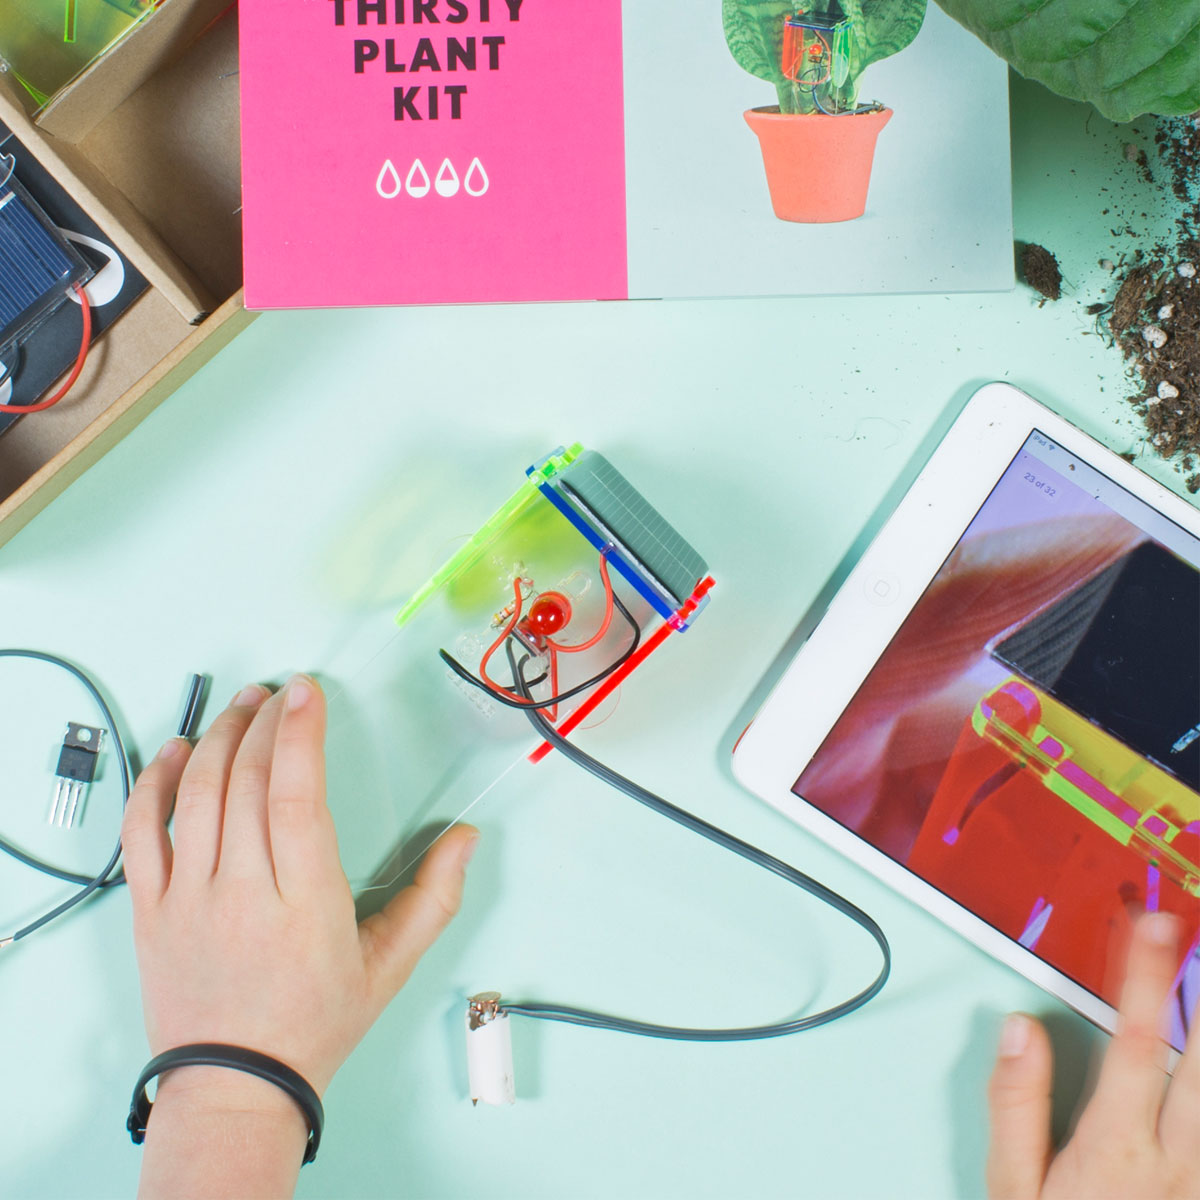 Tech Will Save Us Thirsty Plant Kit Thetot